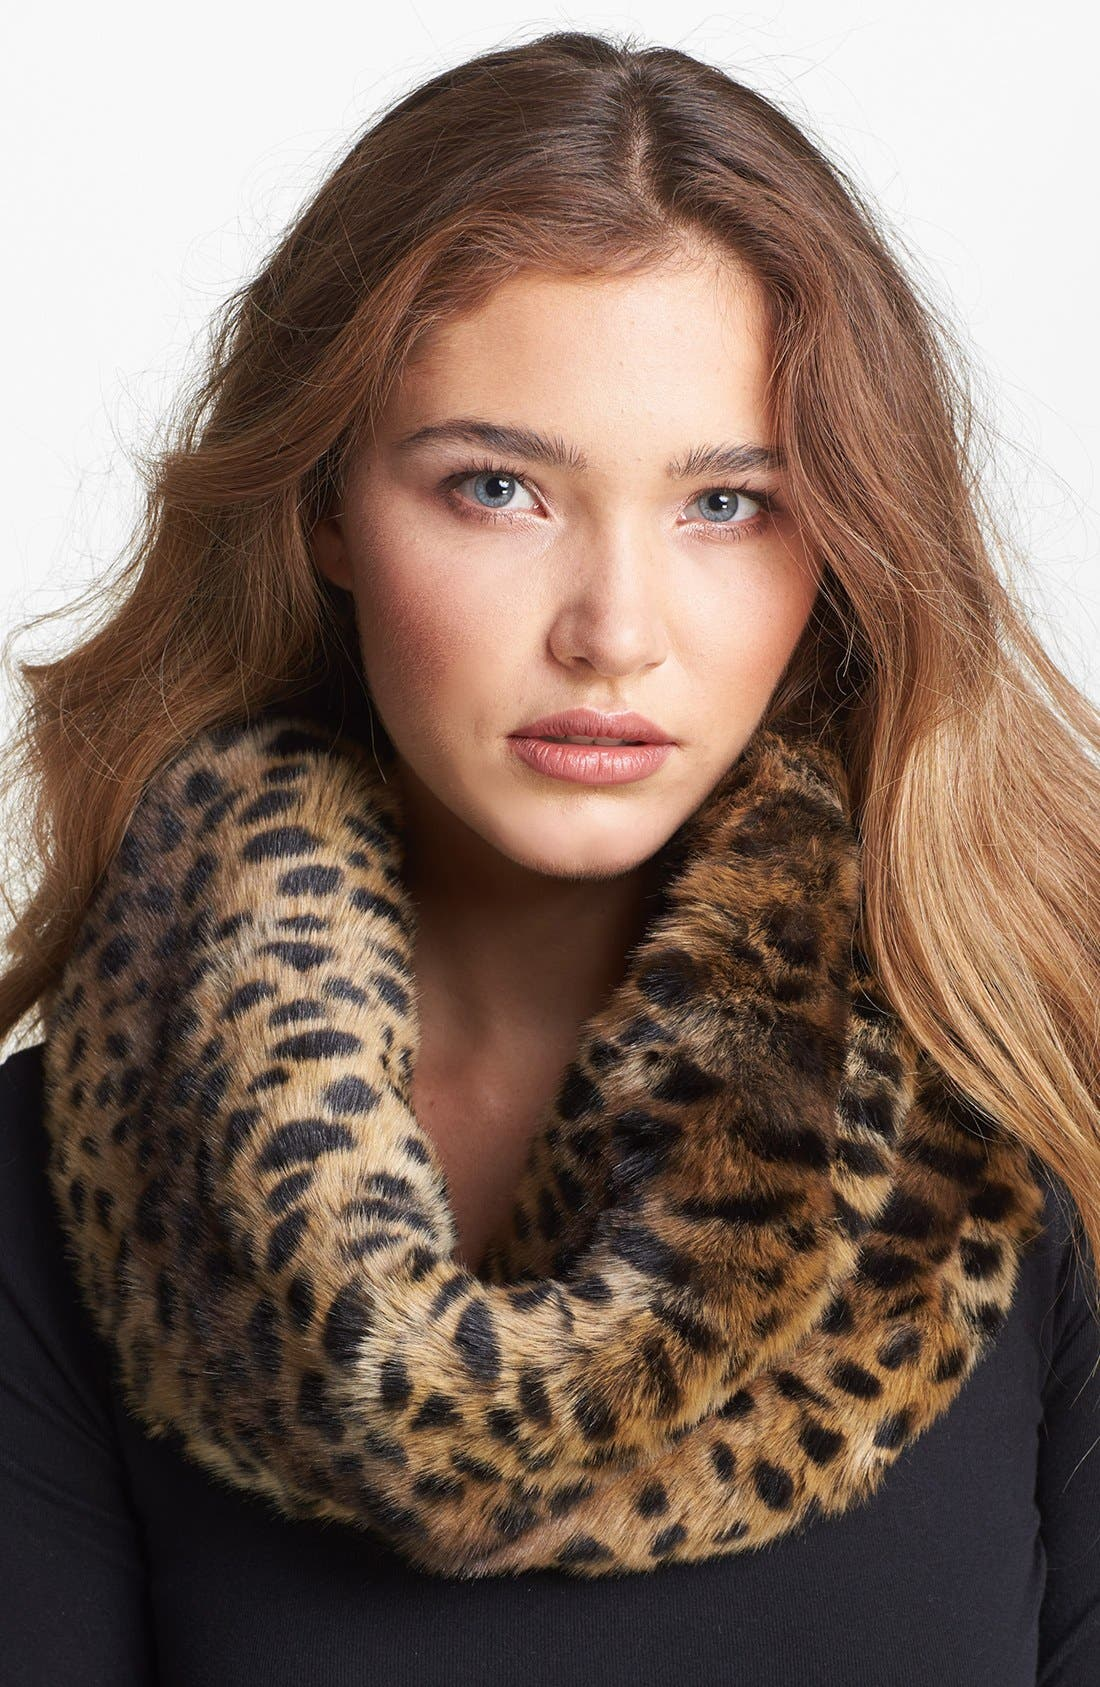 Alternate Image 1 Selected - Parkhurst Faux Fur Twist Infinity Scarf